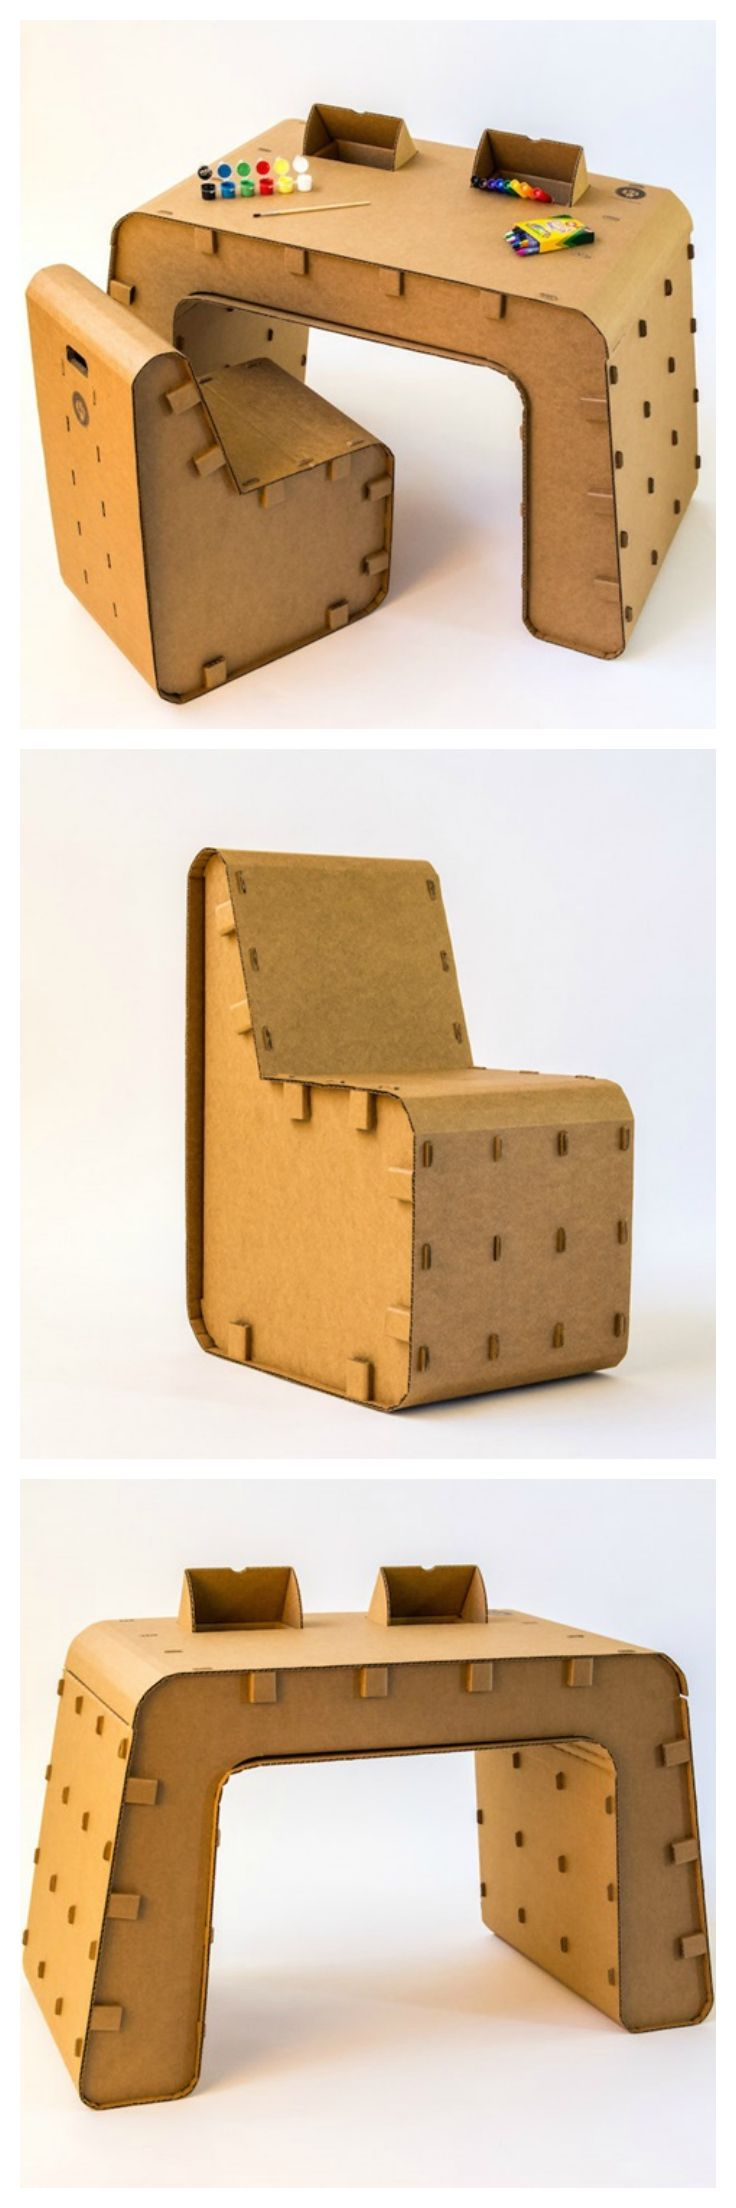 Corrugated Cardboard Furniture 338 Best Cardboard Images On Pinterest Cardboard Furniture